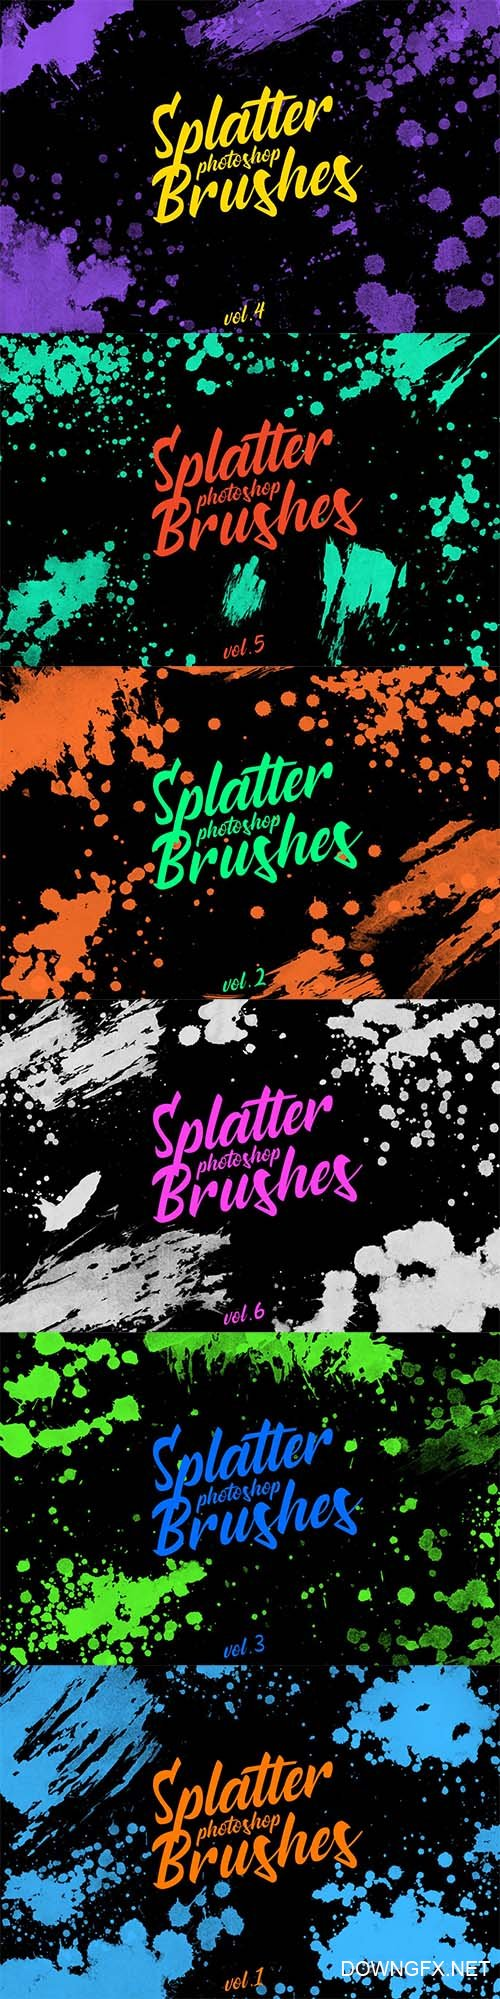 Splatter Stamp Photoshop Brushes Vol. 1-6